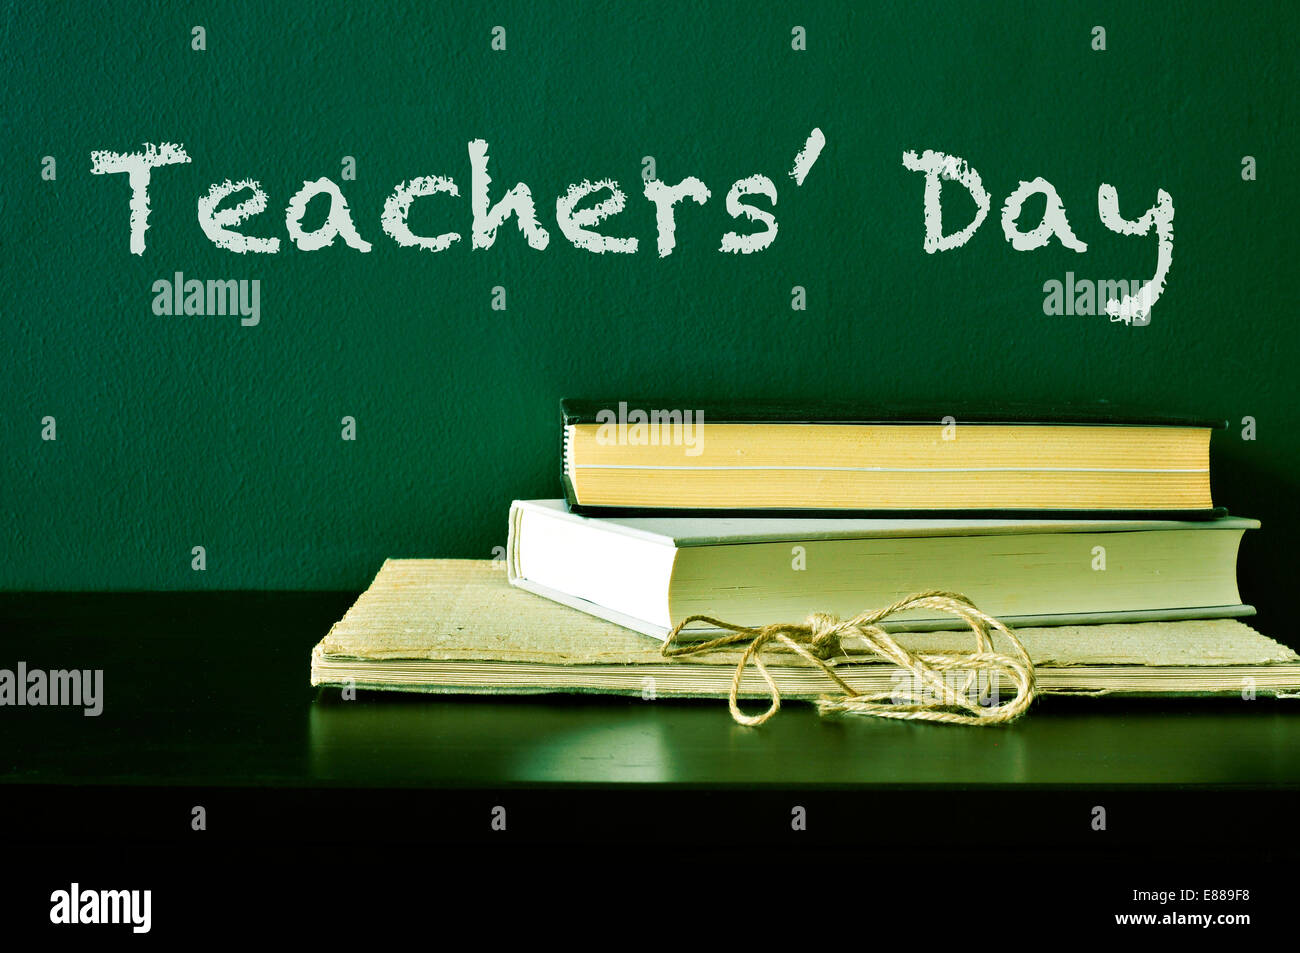 the text Teachers Day written with chalk on a green chalkboard and some books on a desk - Stock Image